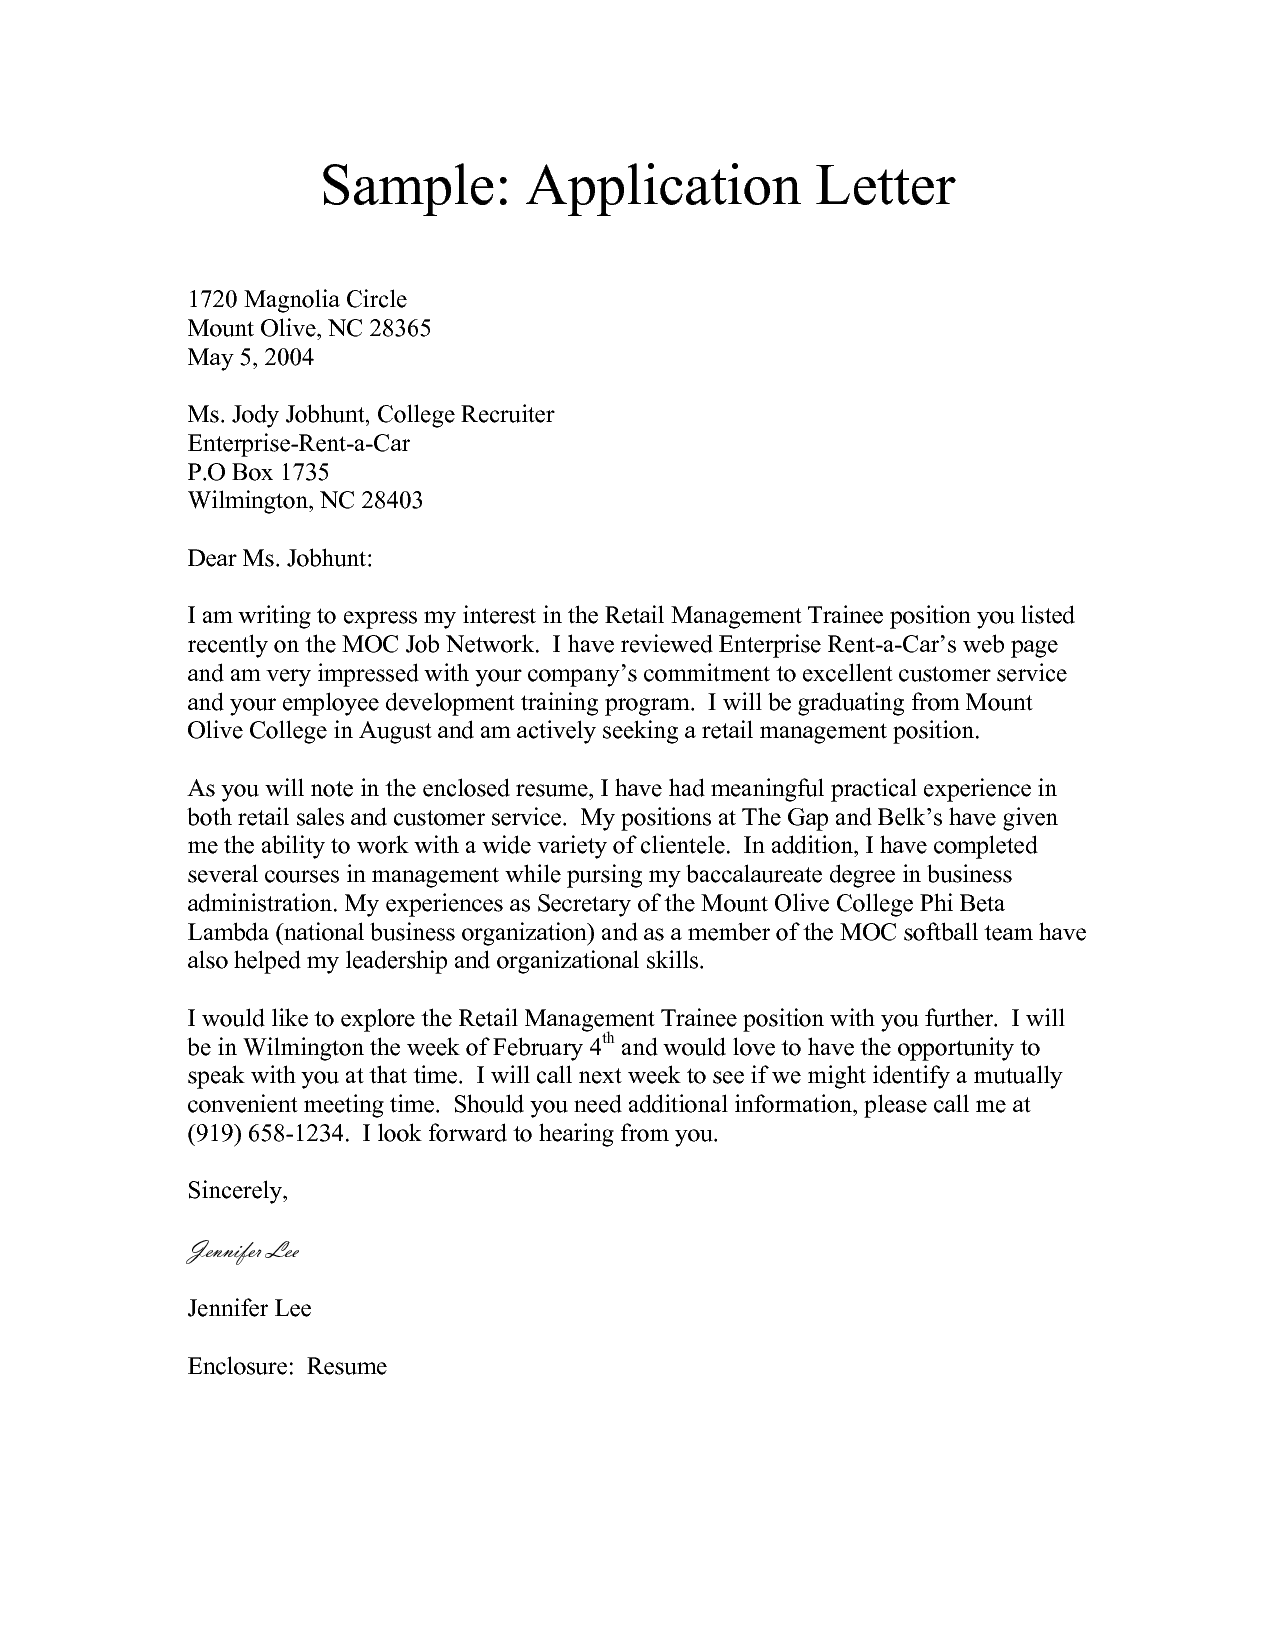 Letter For Application